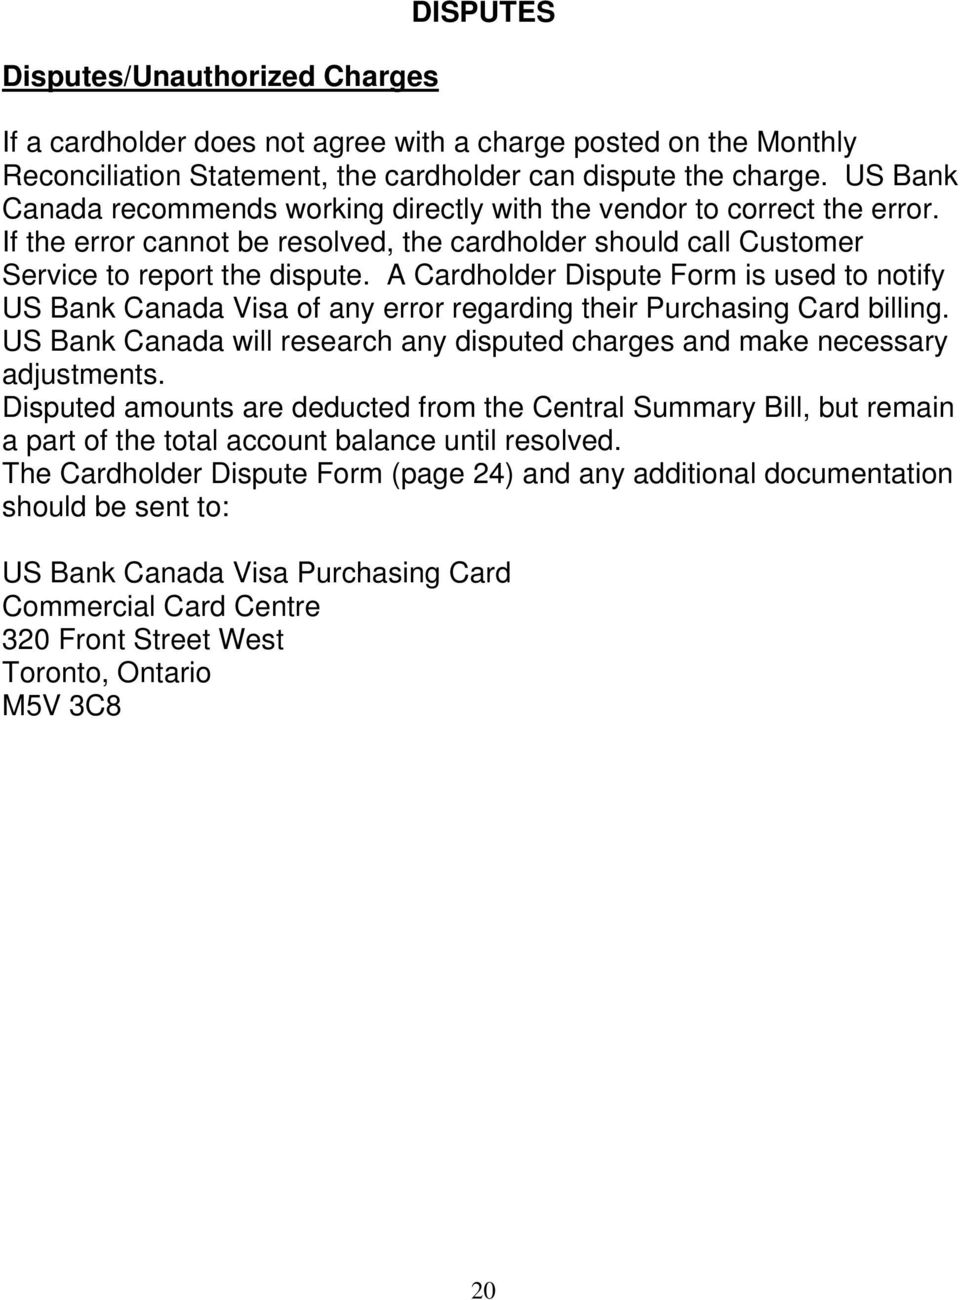 A Cardholder Dispute Form is used to notify US Bank Canada Visa of any error regarding their Purchasing Card billing. US Bank Canada will research any disputed charges and make necessary adjustments.